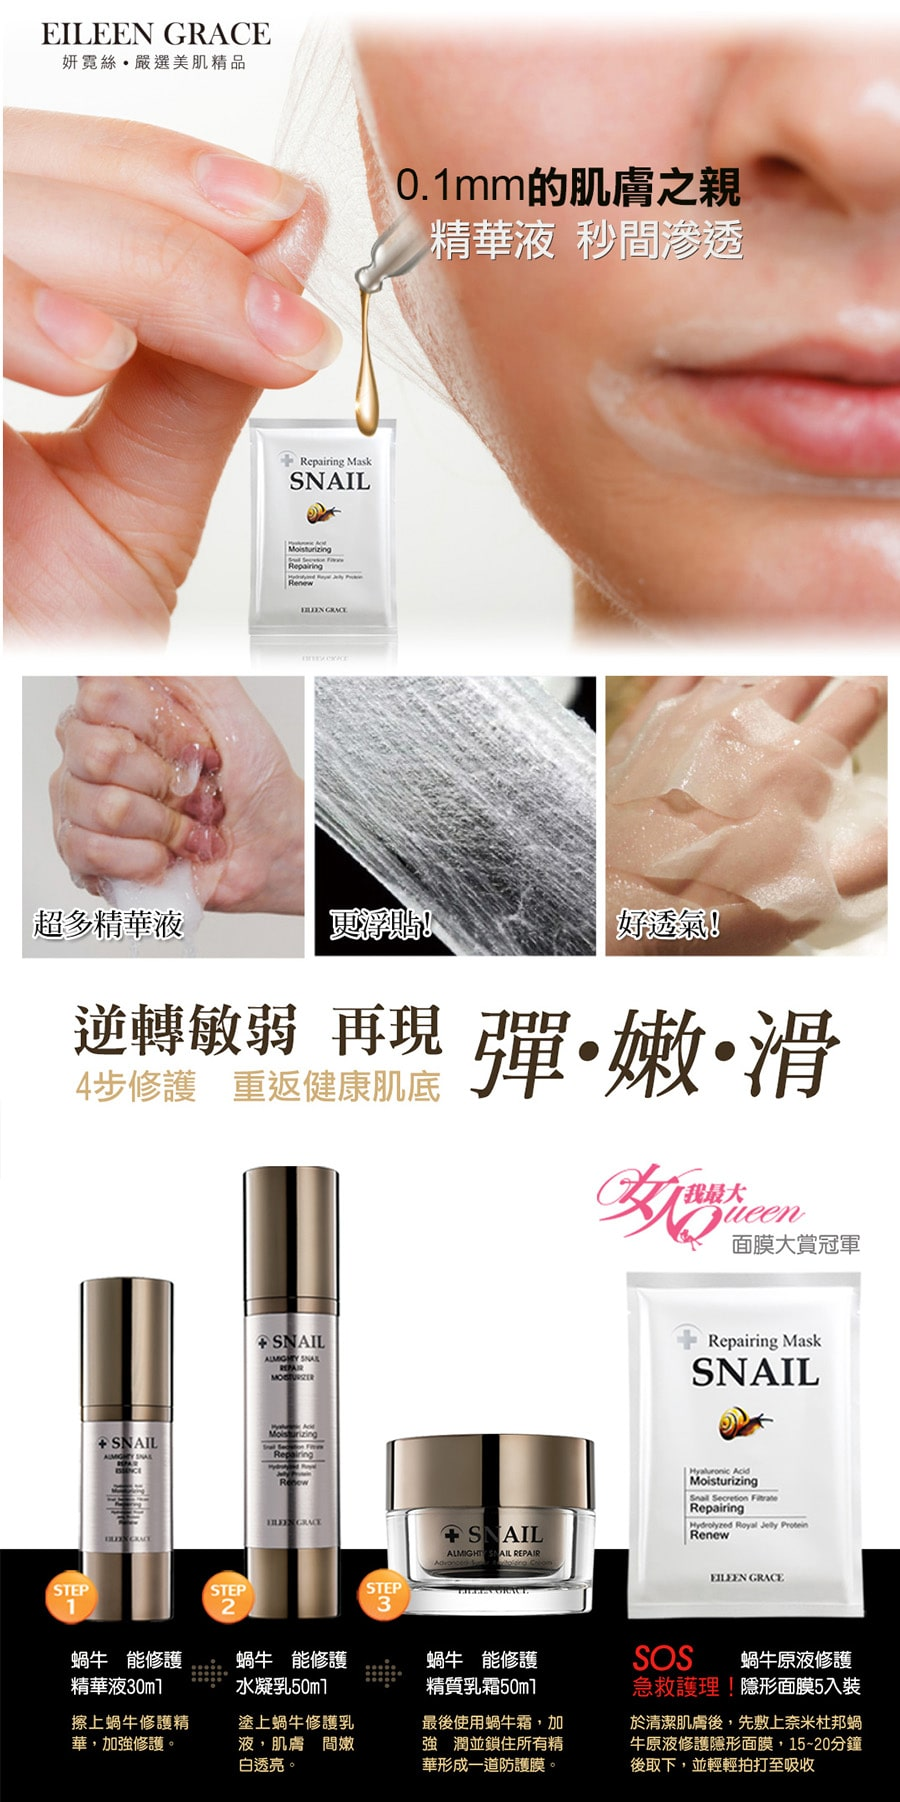 Almighty Snail Repairing Mask - Features